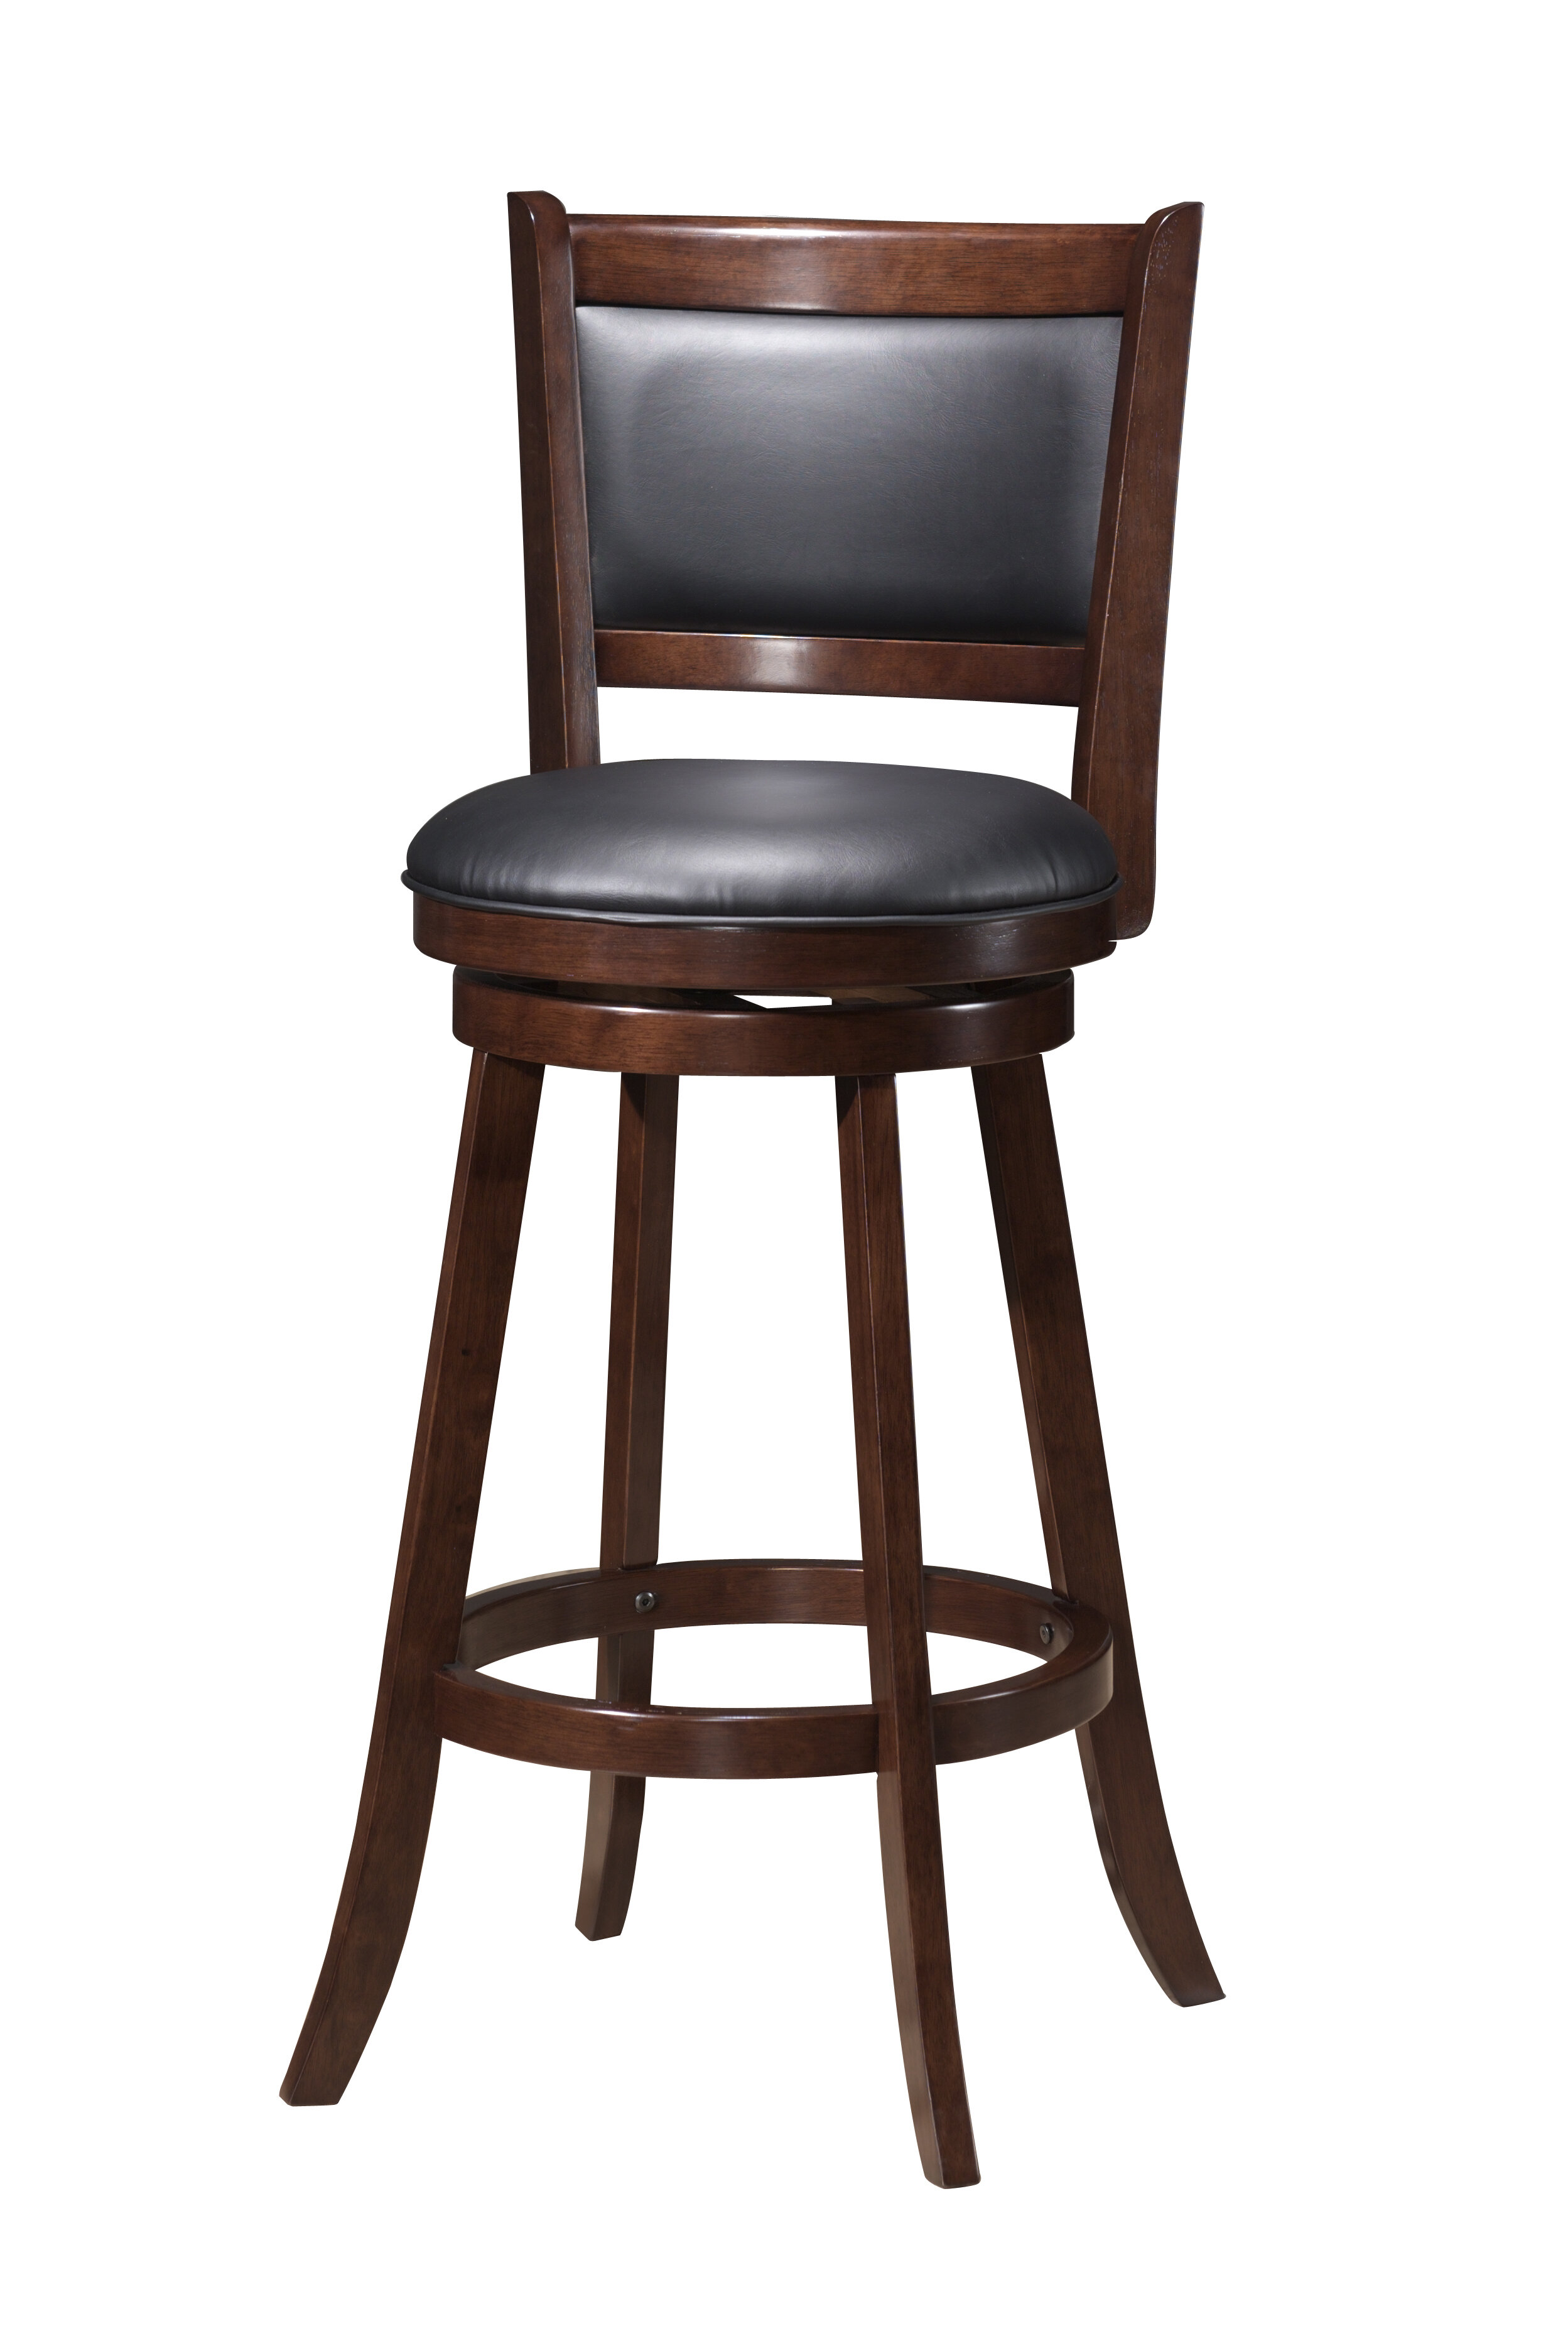 extraordinary metal with stool amazing dark bar of white swivel interior arms wooden and stunning design stacking backs furniture inch kitchen barstool for rustic stools wood